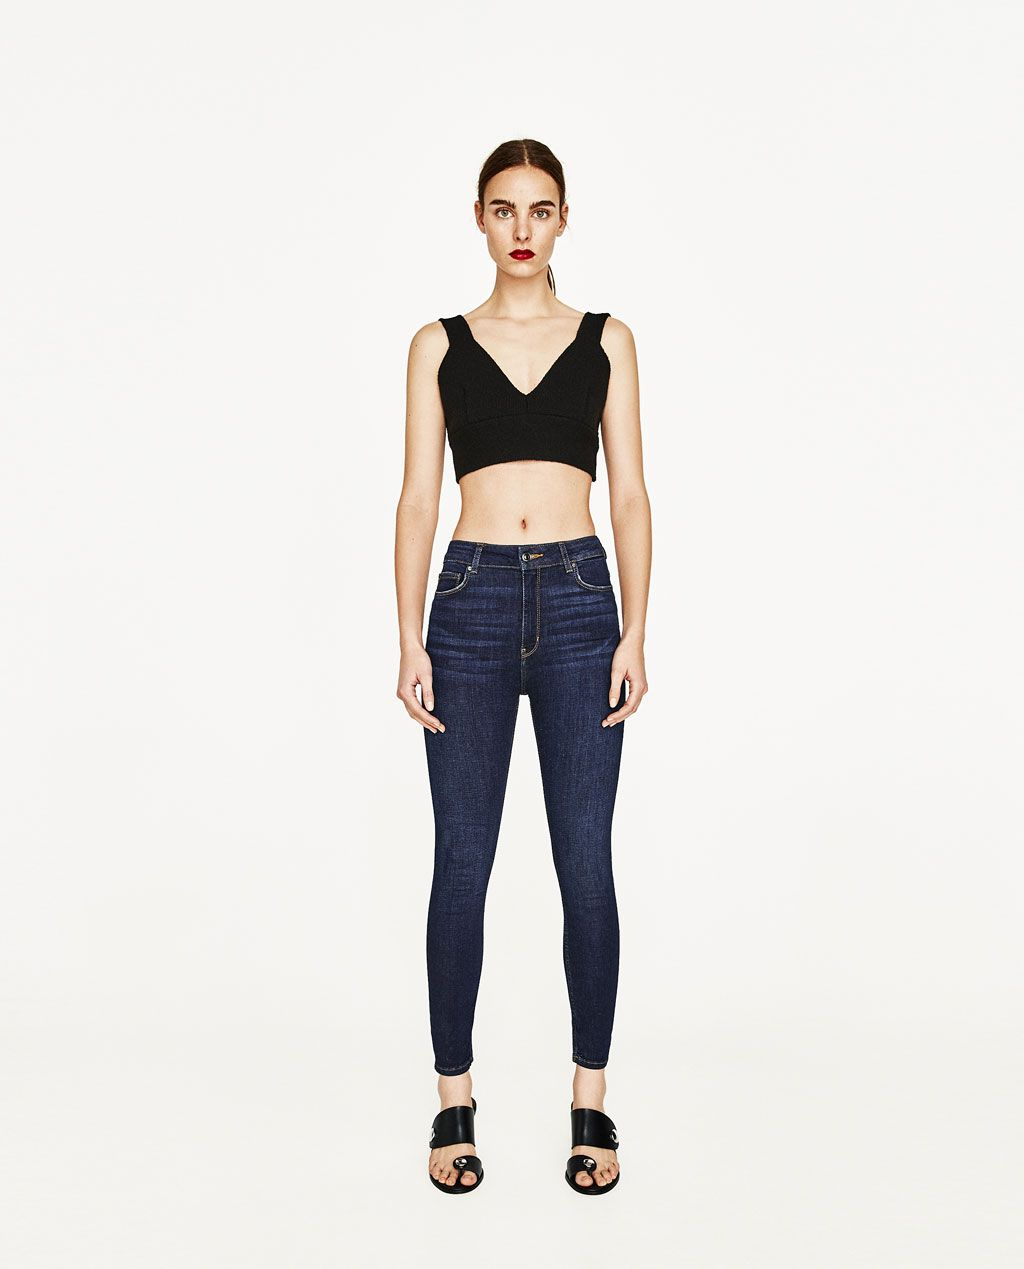 bc49c01f40 Image 1 of HIGH RISE SKINNY JEANS from Zara | shopping ...